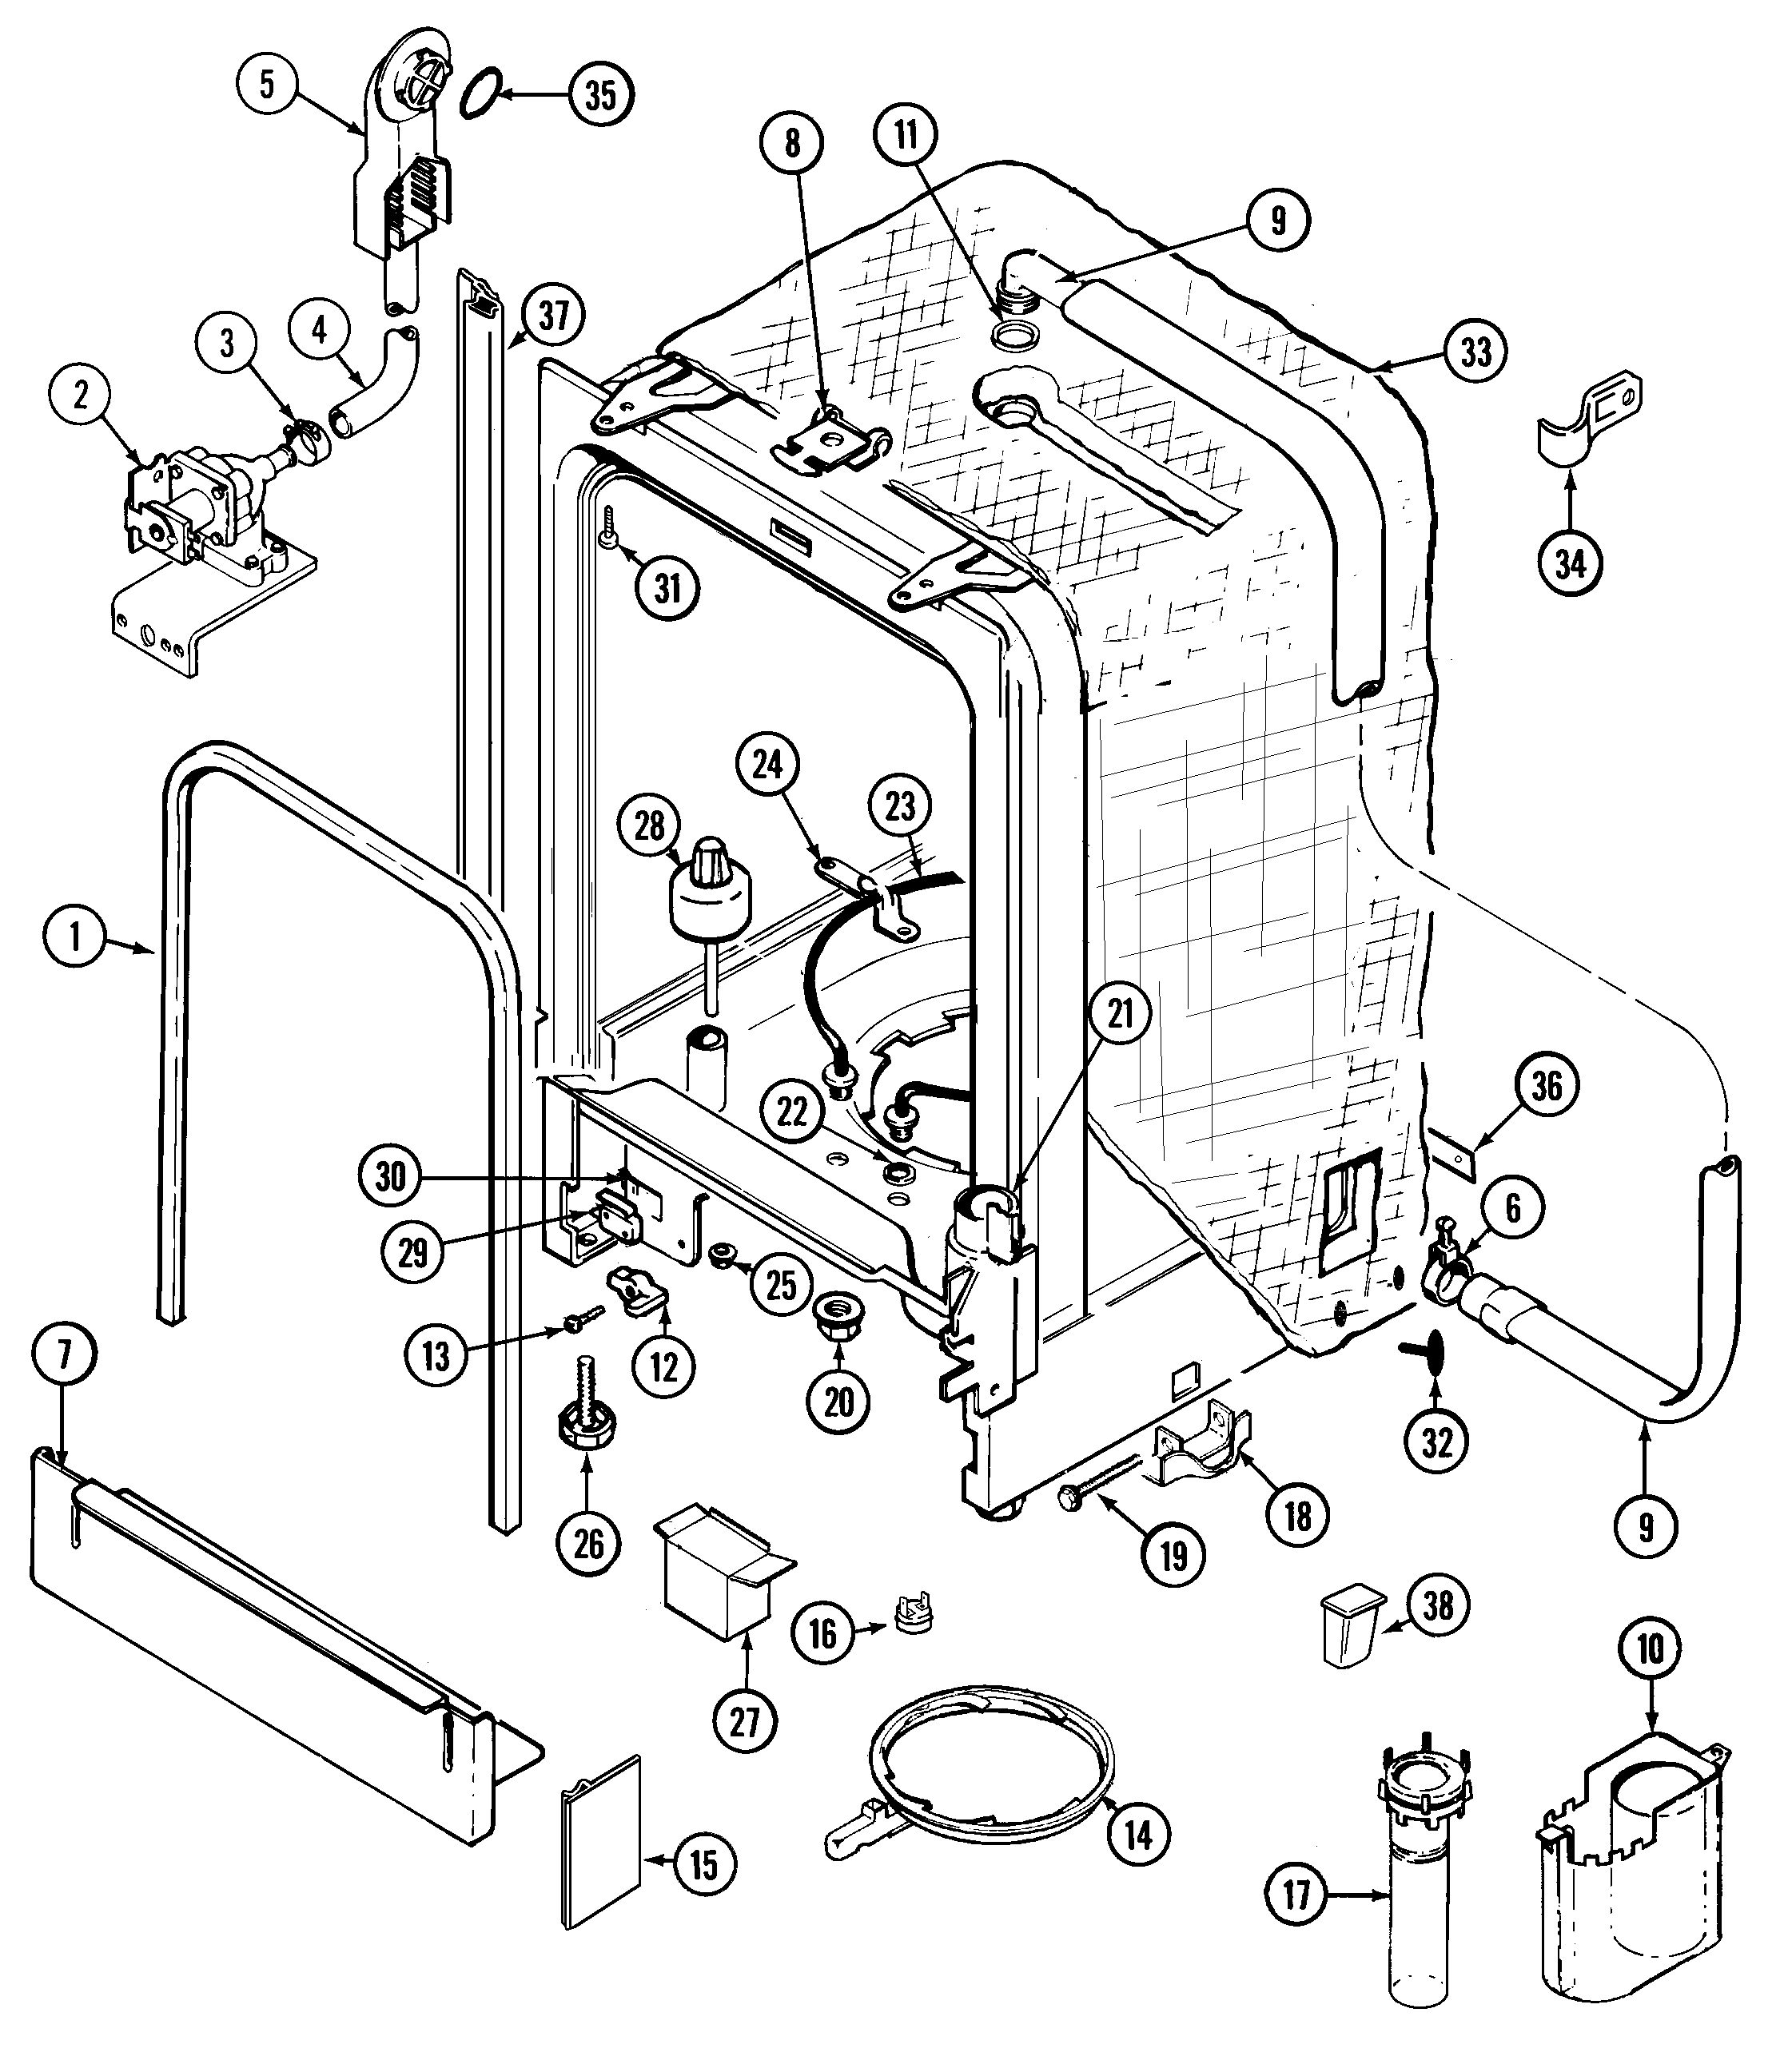 Whirlpool Parts Whirlpool Gold Dishwasher Parts Diagram